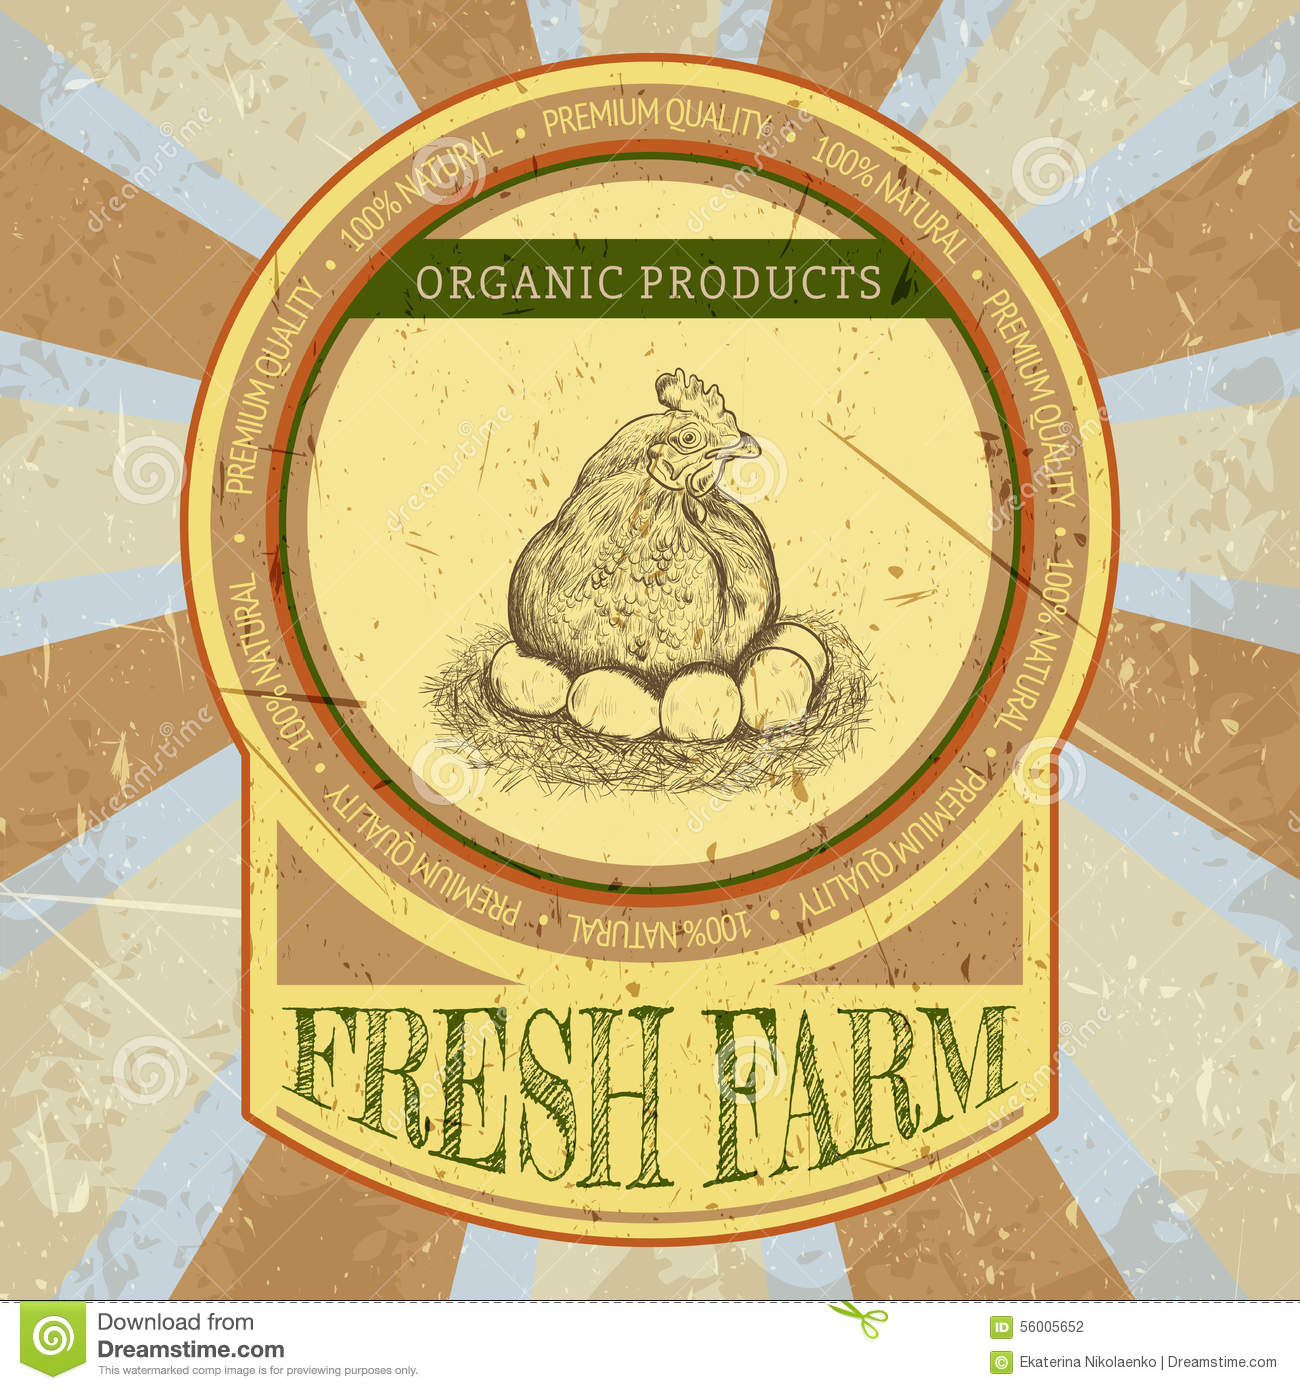 Organic Farm Vintage Label With Chicken And Eggs Stock